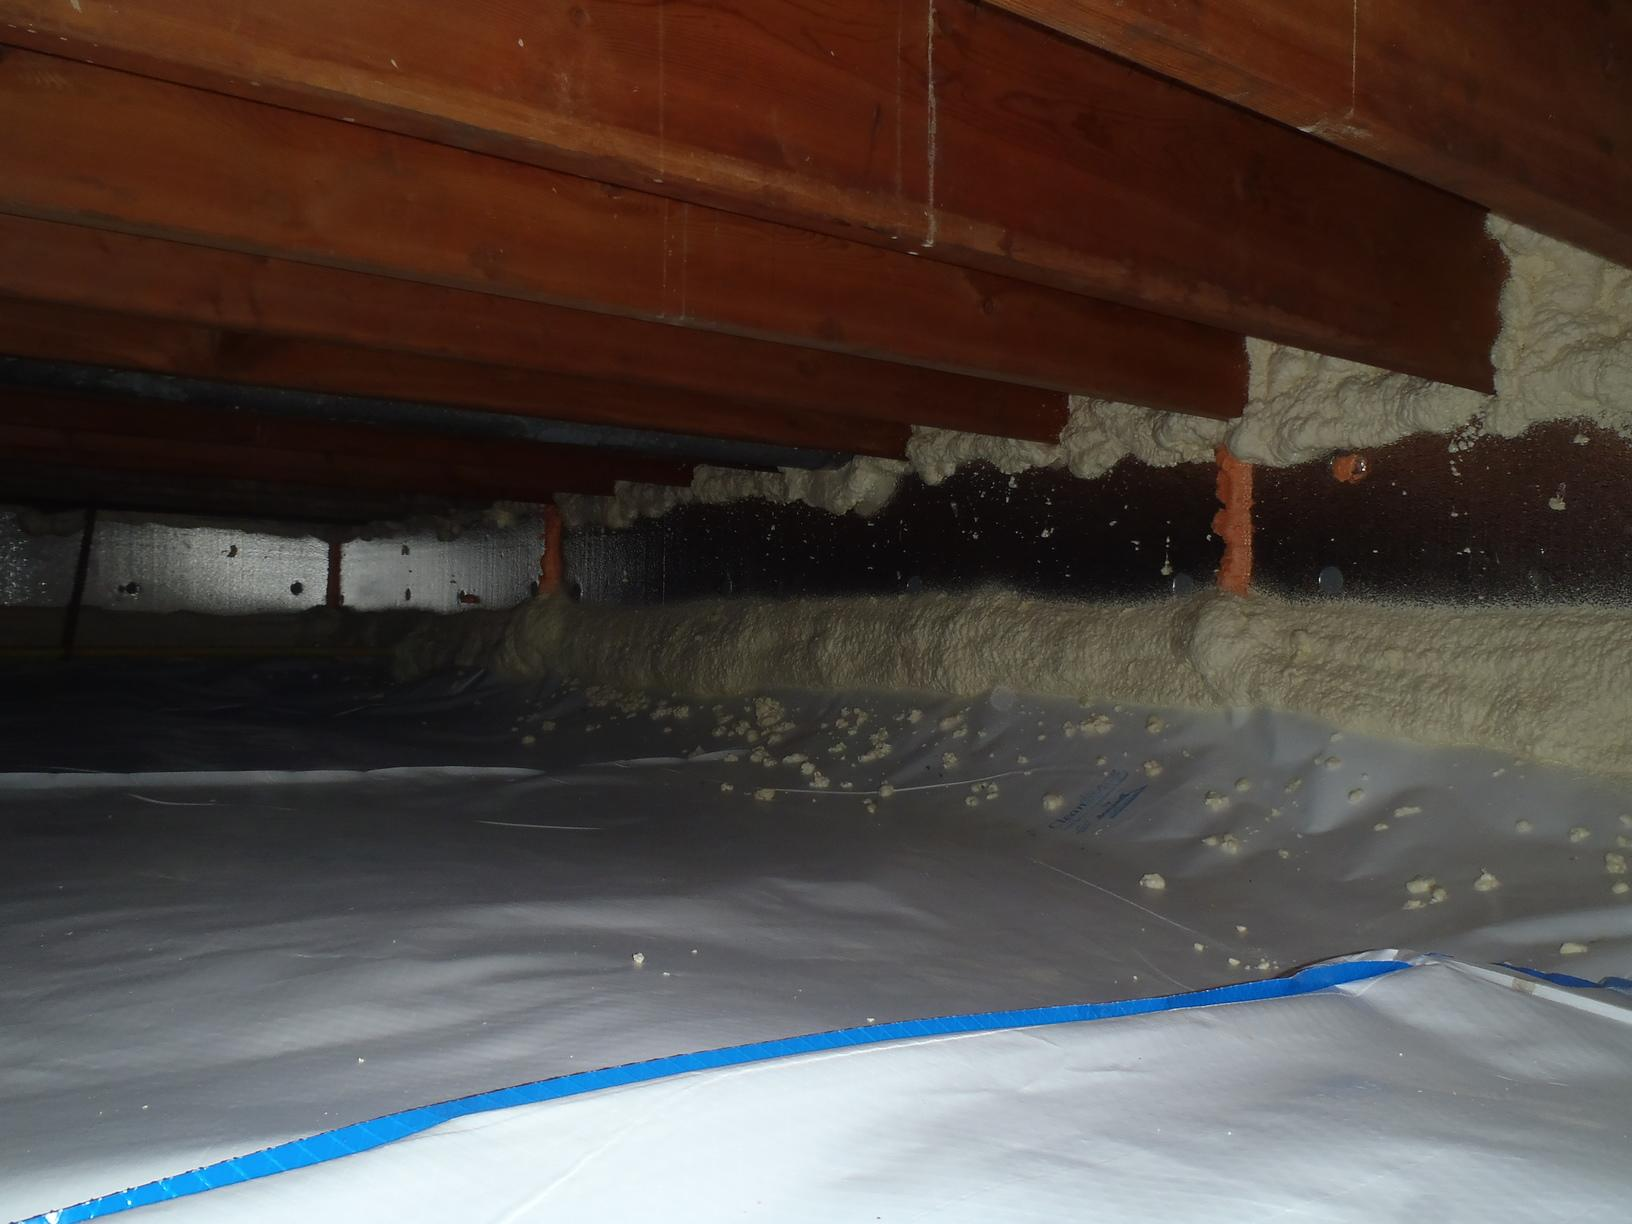 Crawl Space Encapsulation & Air Sealing in Grosse Pointe, MI - After Photo